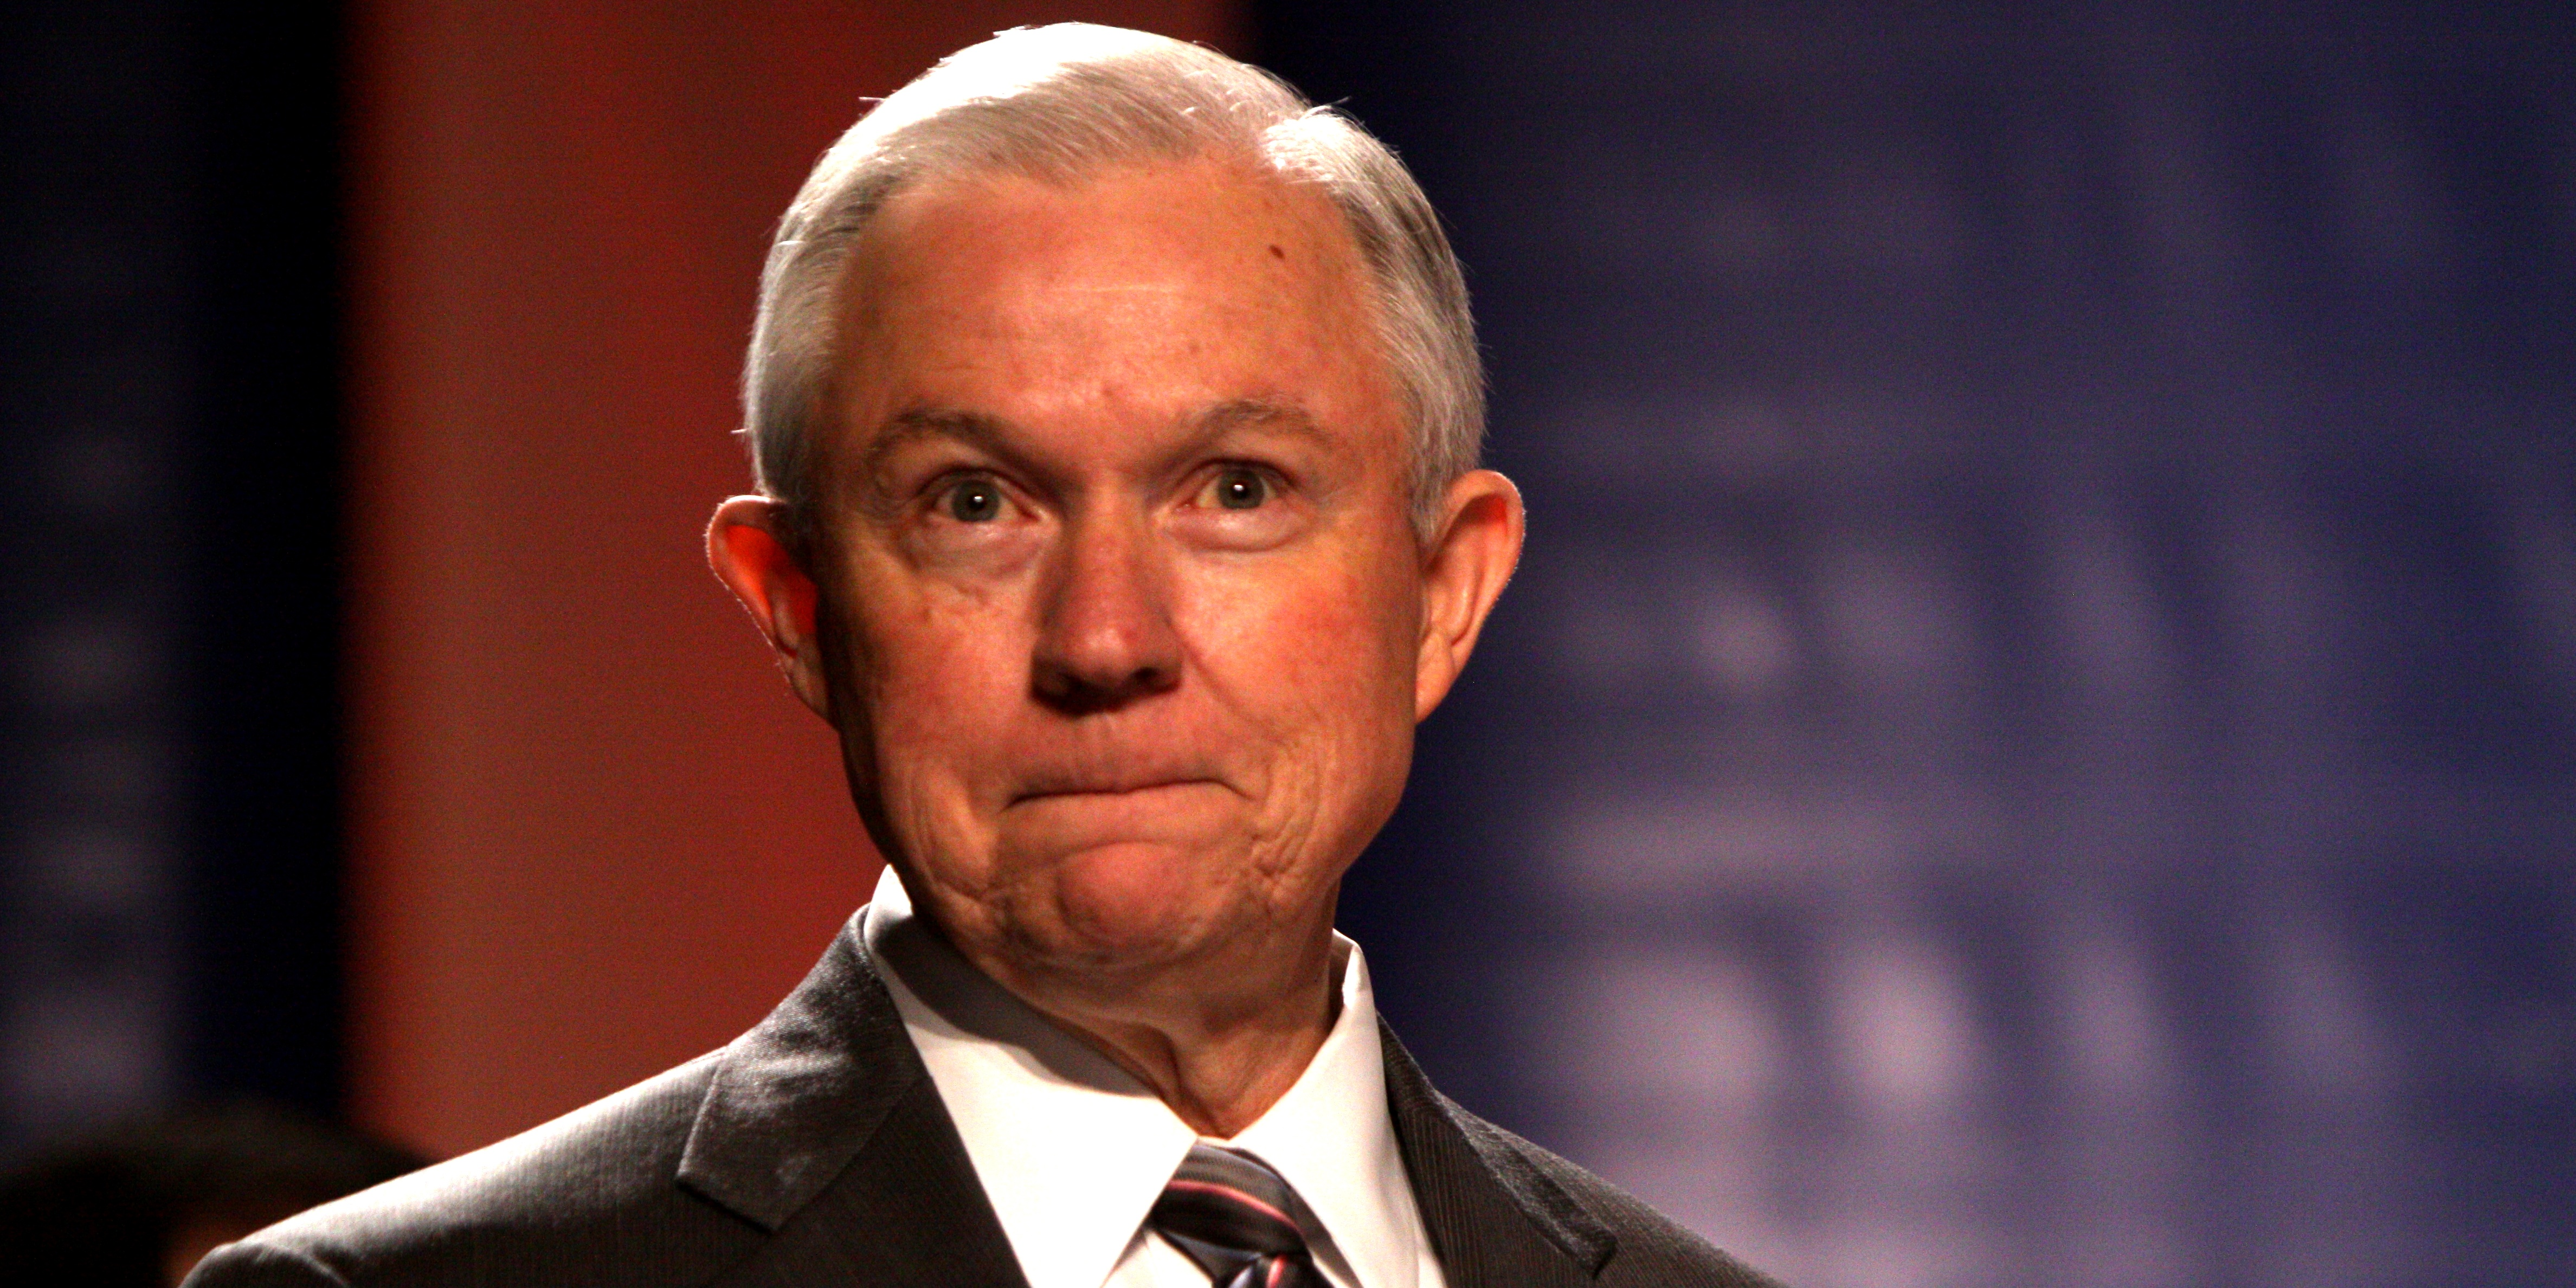 Jeff Sessions wants Congress to let the DOJ go after medical marijuana patients